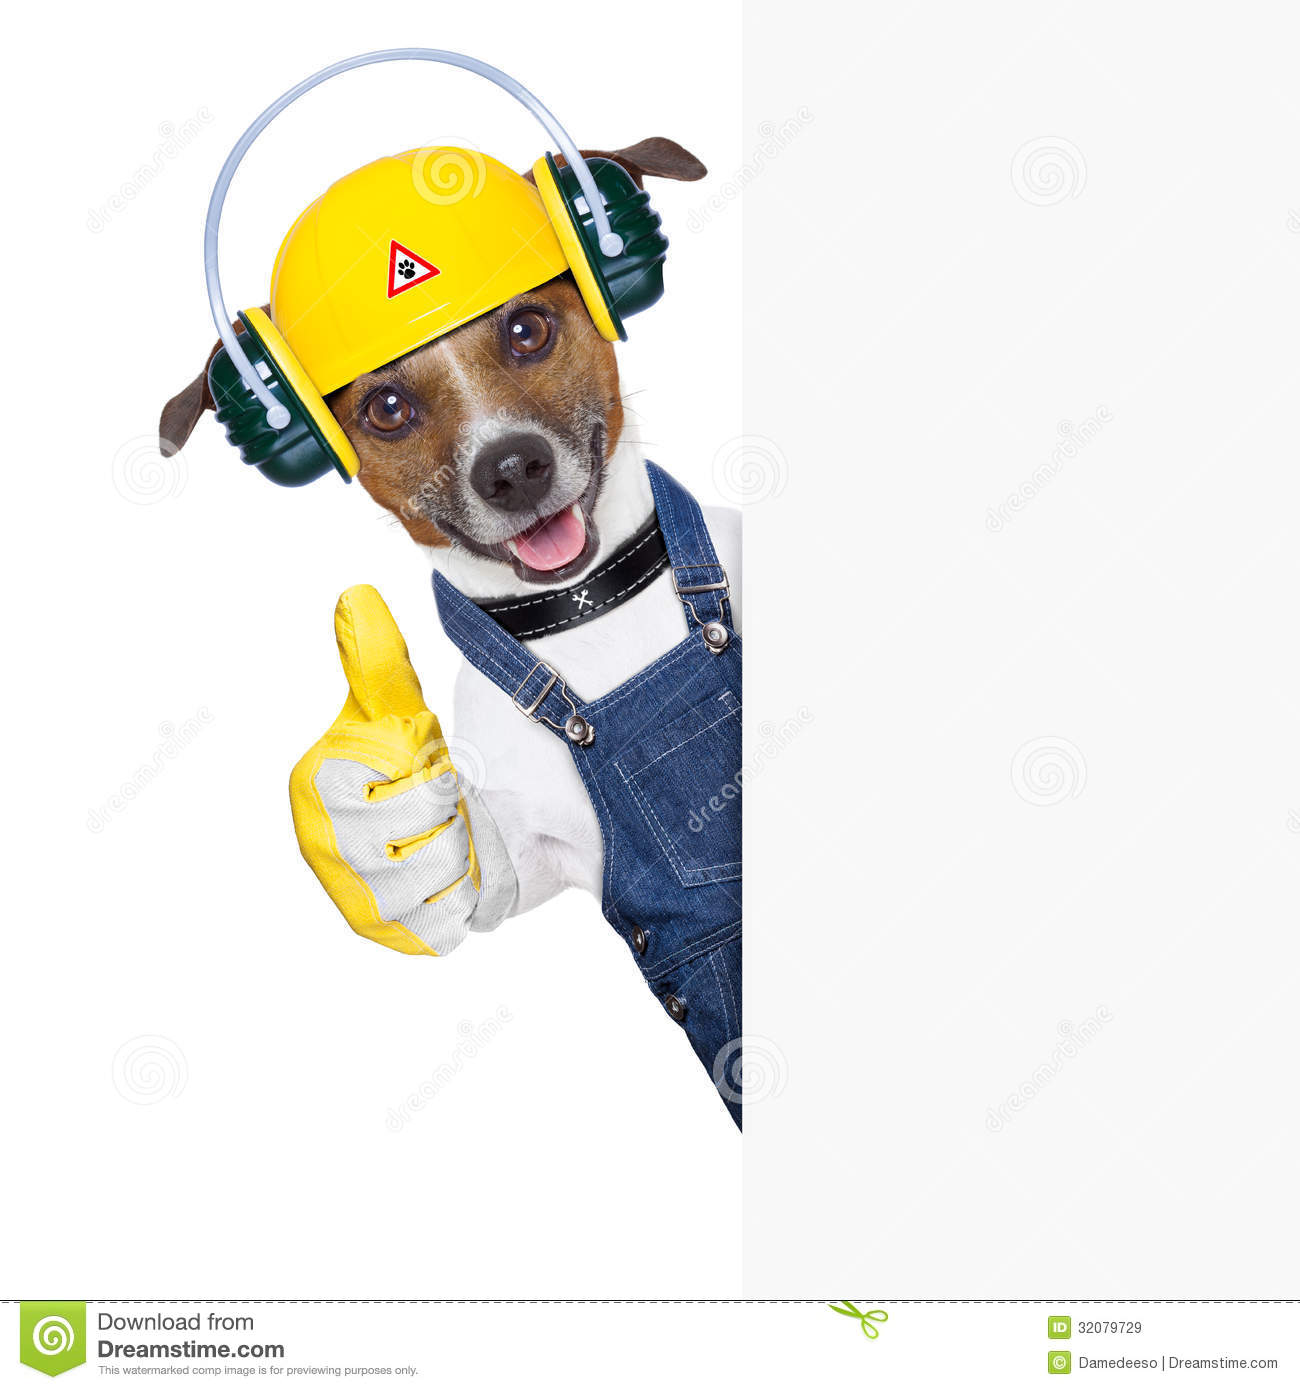 Thumbs up dog clipart image freeuse library Dog Thumbs Up Clipart - Clipart Kid image freeuse library